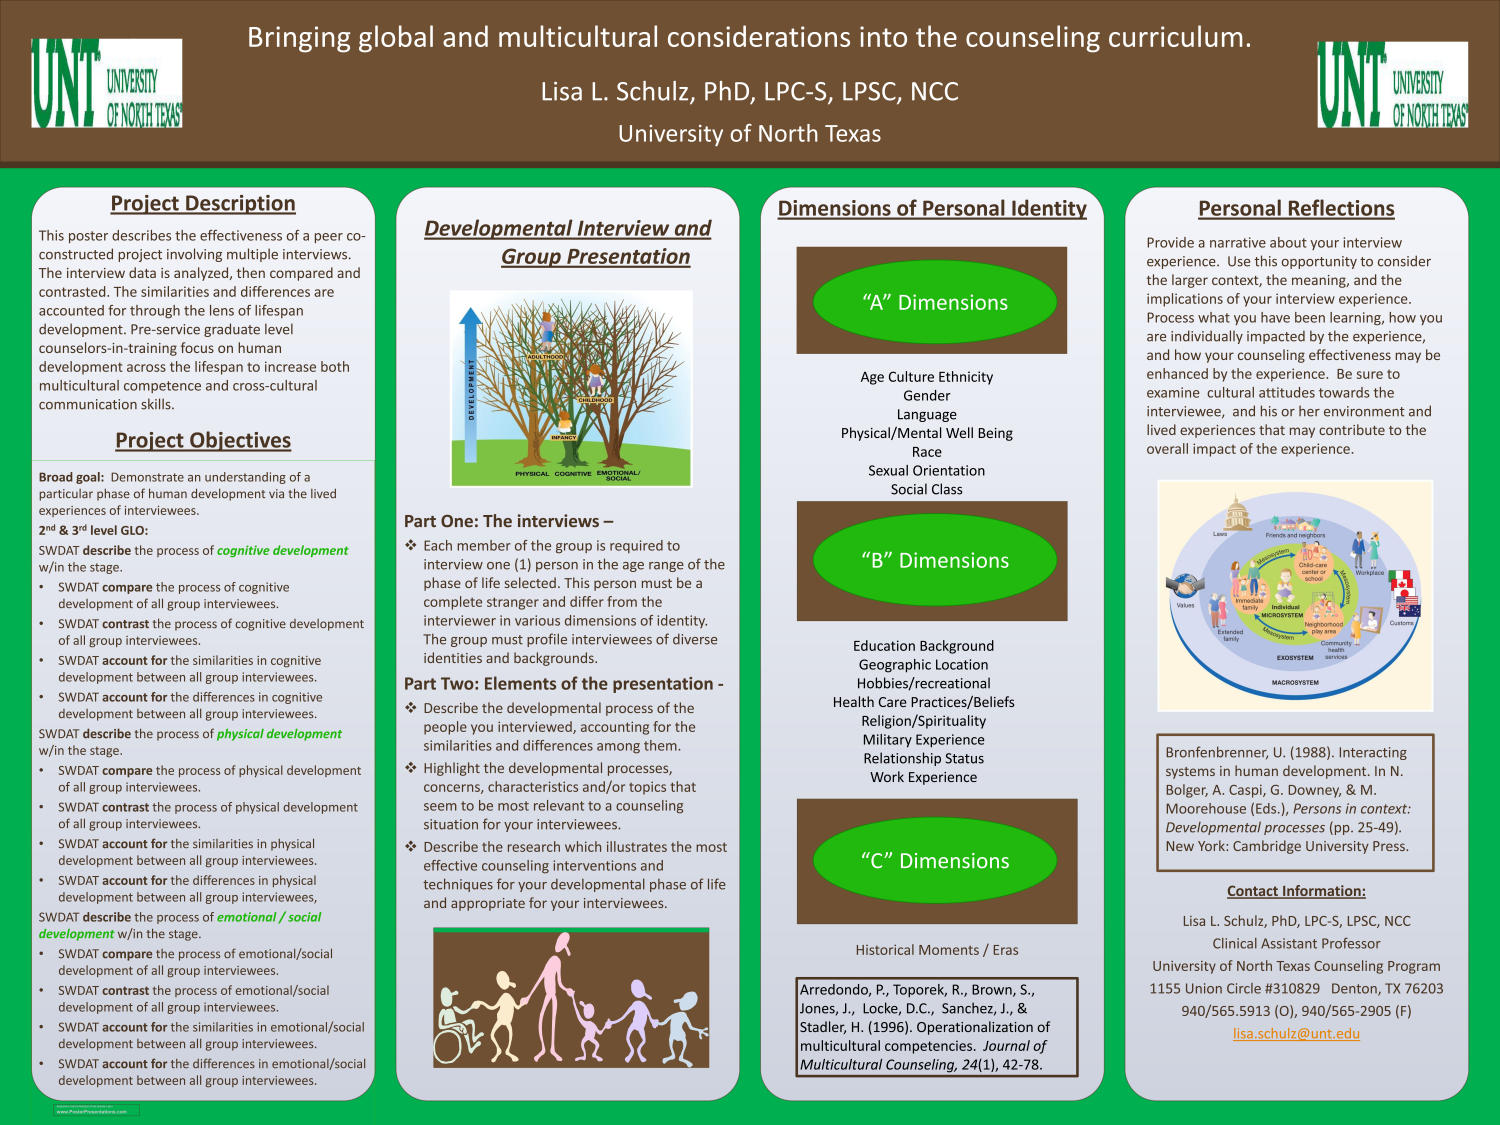 Bringing Global and Multicultural Considerations into the Counseling Curriculum                                                                                                      [Sequence #]: 1 of 1